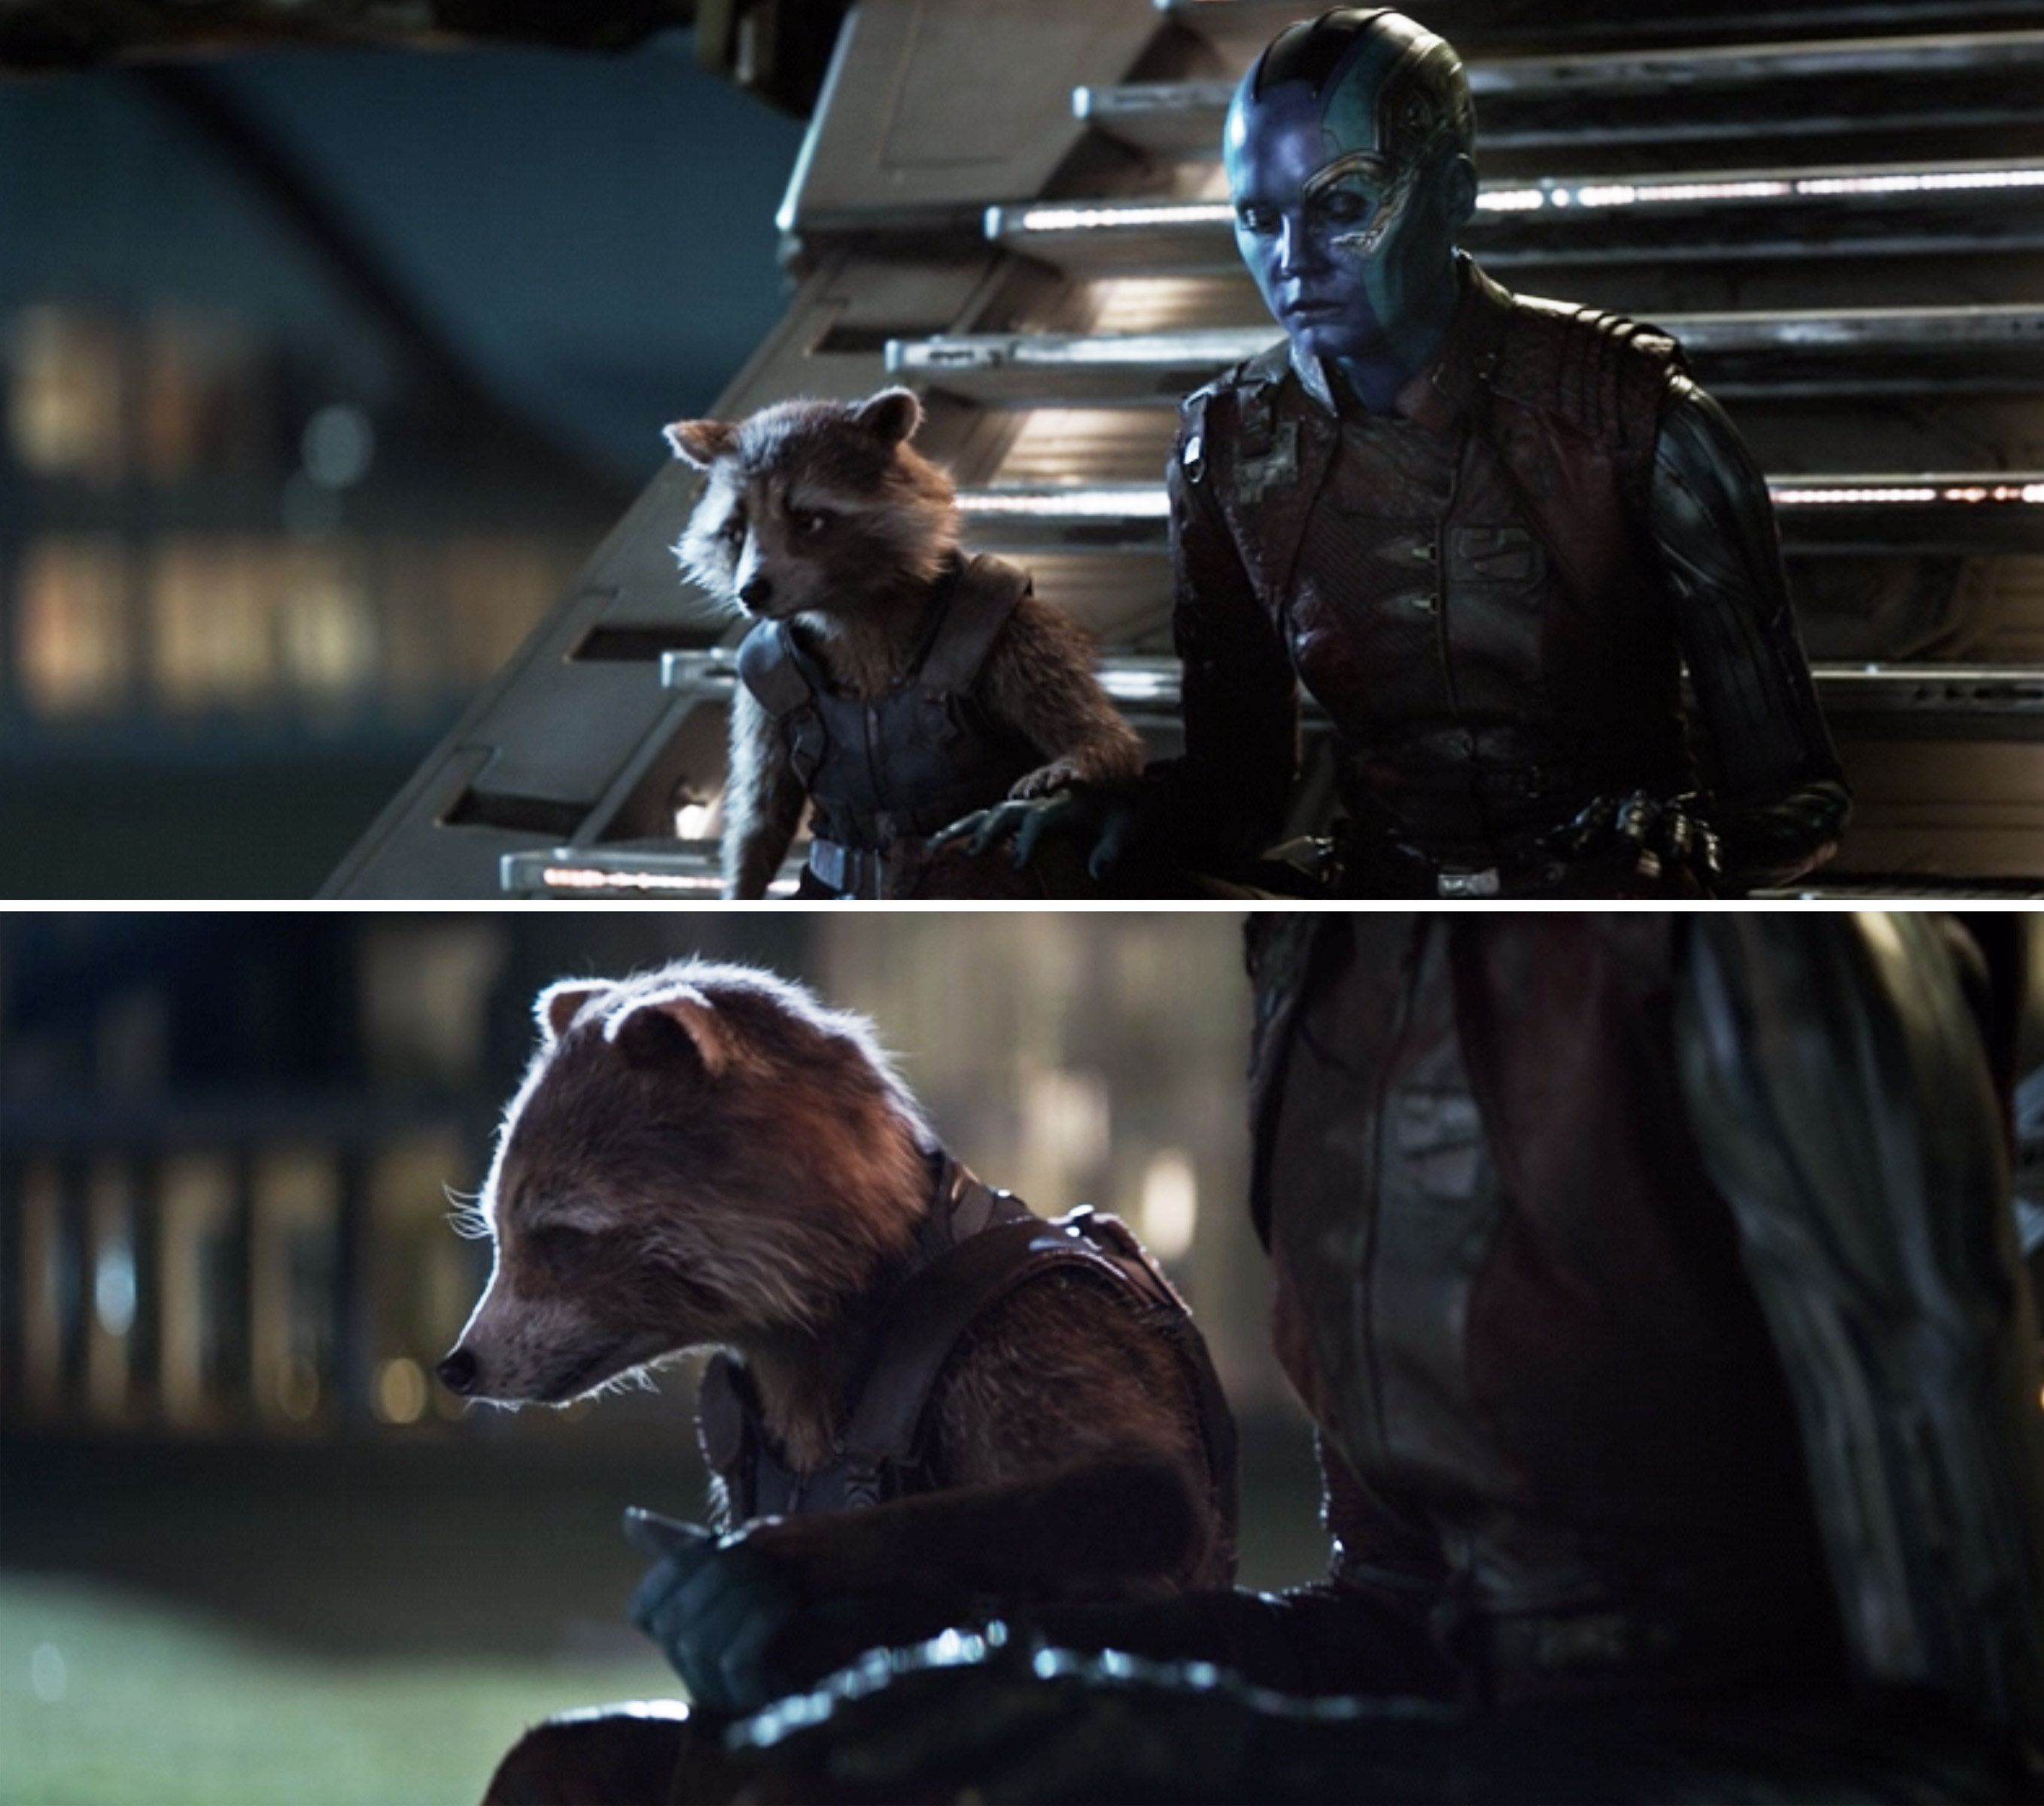 Rocket putting his hand on Nebula's and then Nebula holding his hand